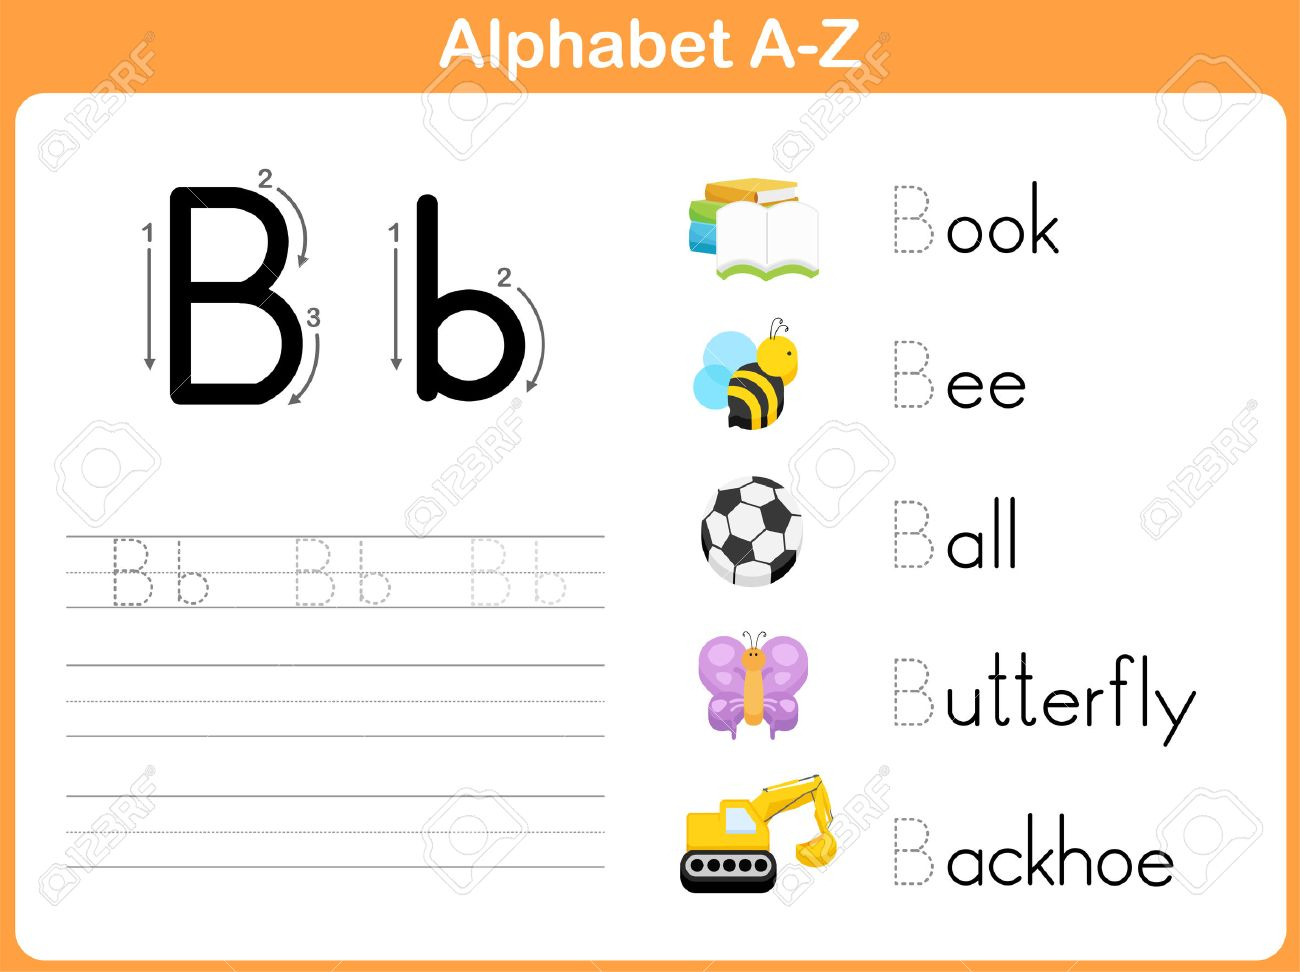 Alphabet Tracing Worksheet: Writing A-Z pertaining to A-Z Alphabet Tracing